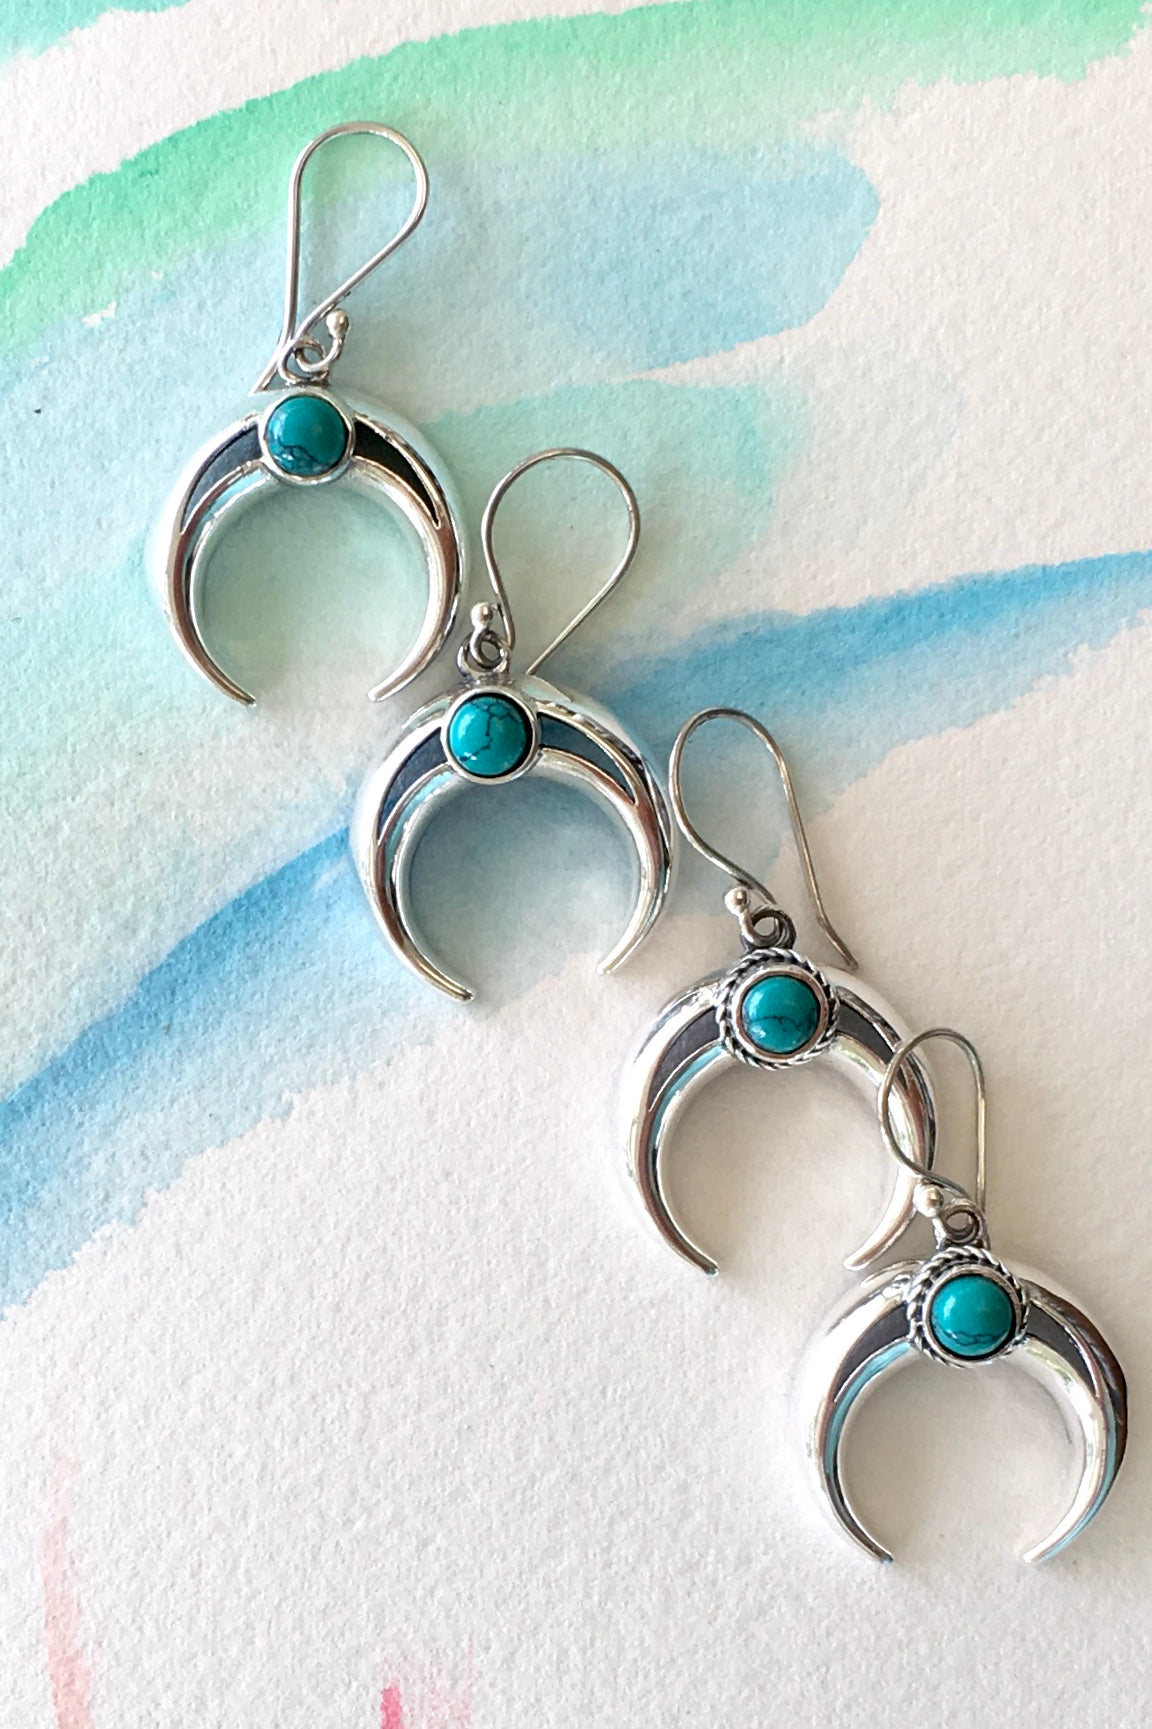 Crescent moon earrings with turquoise bead and detailing. Bohemian design